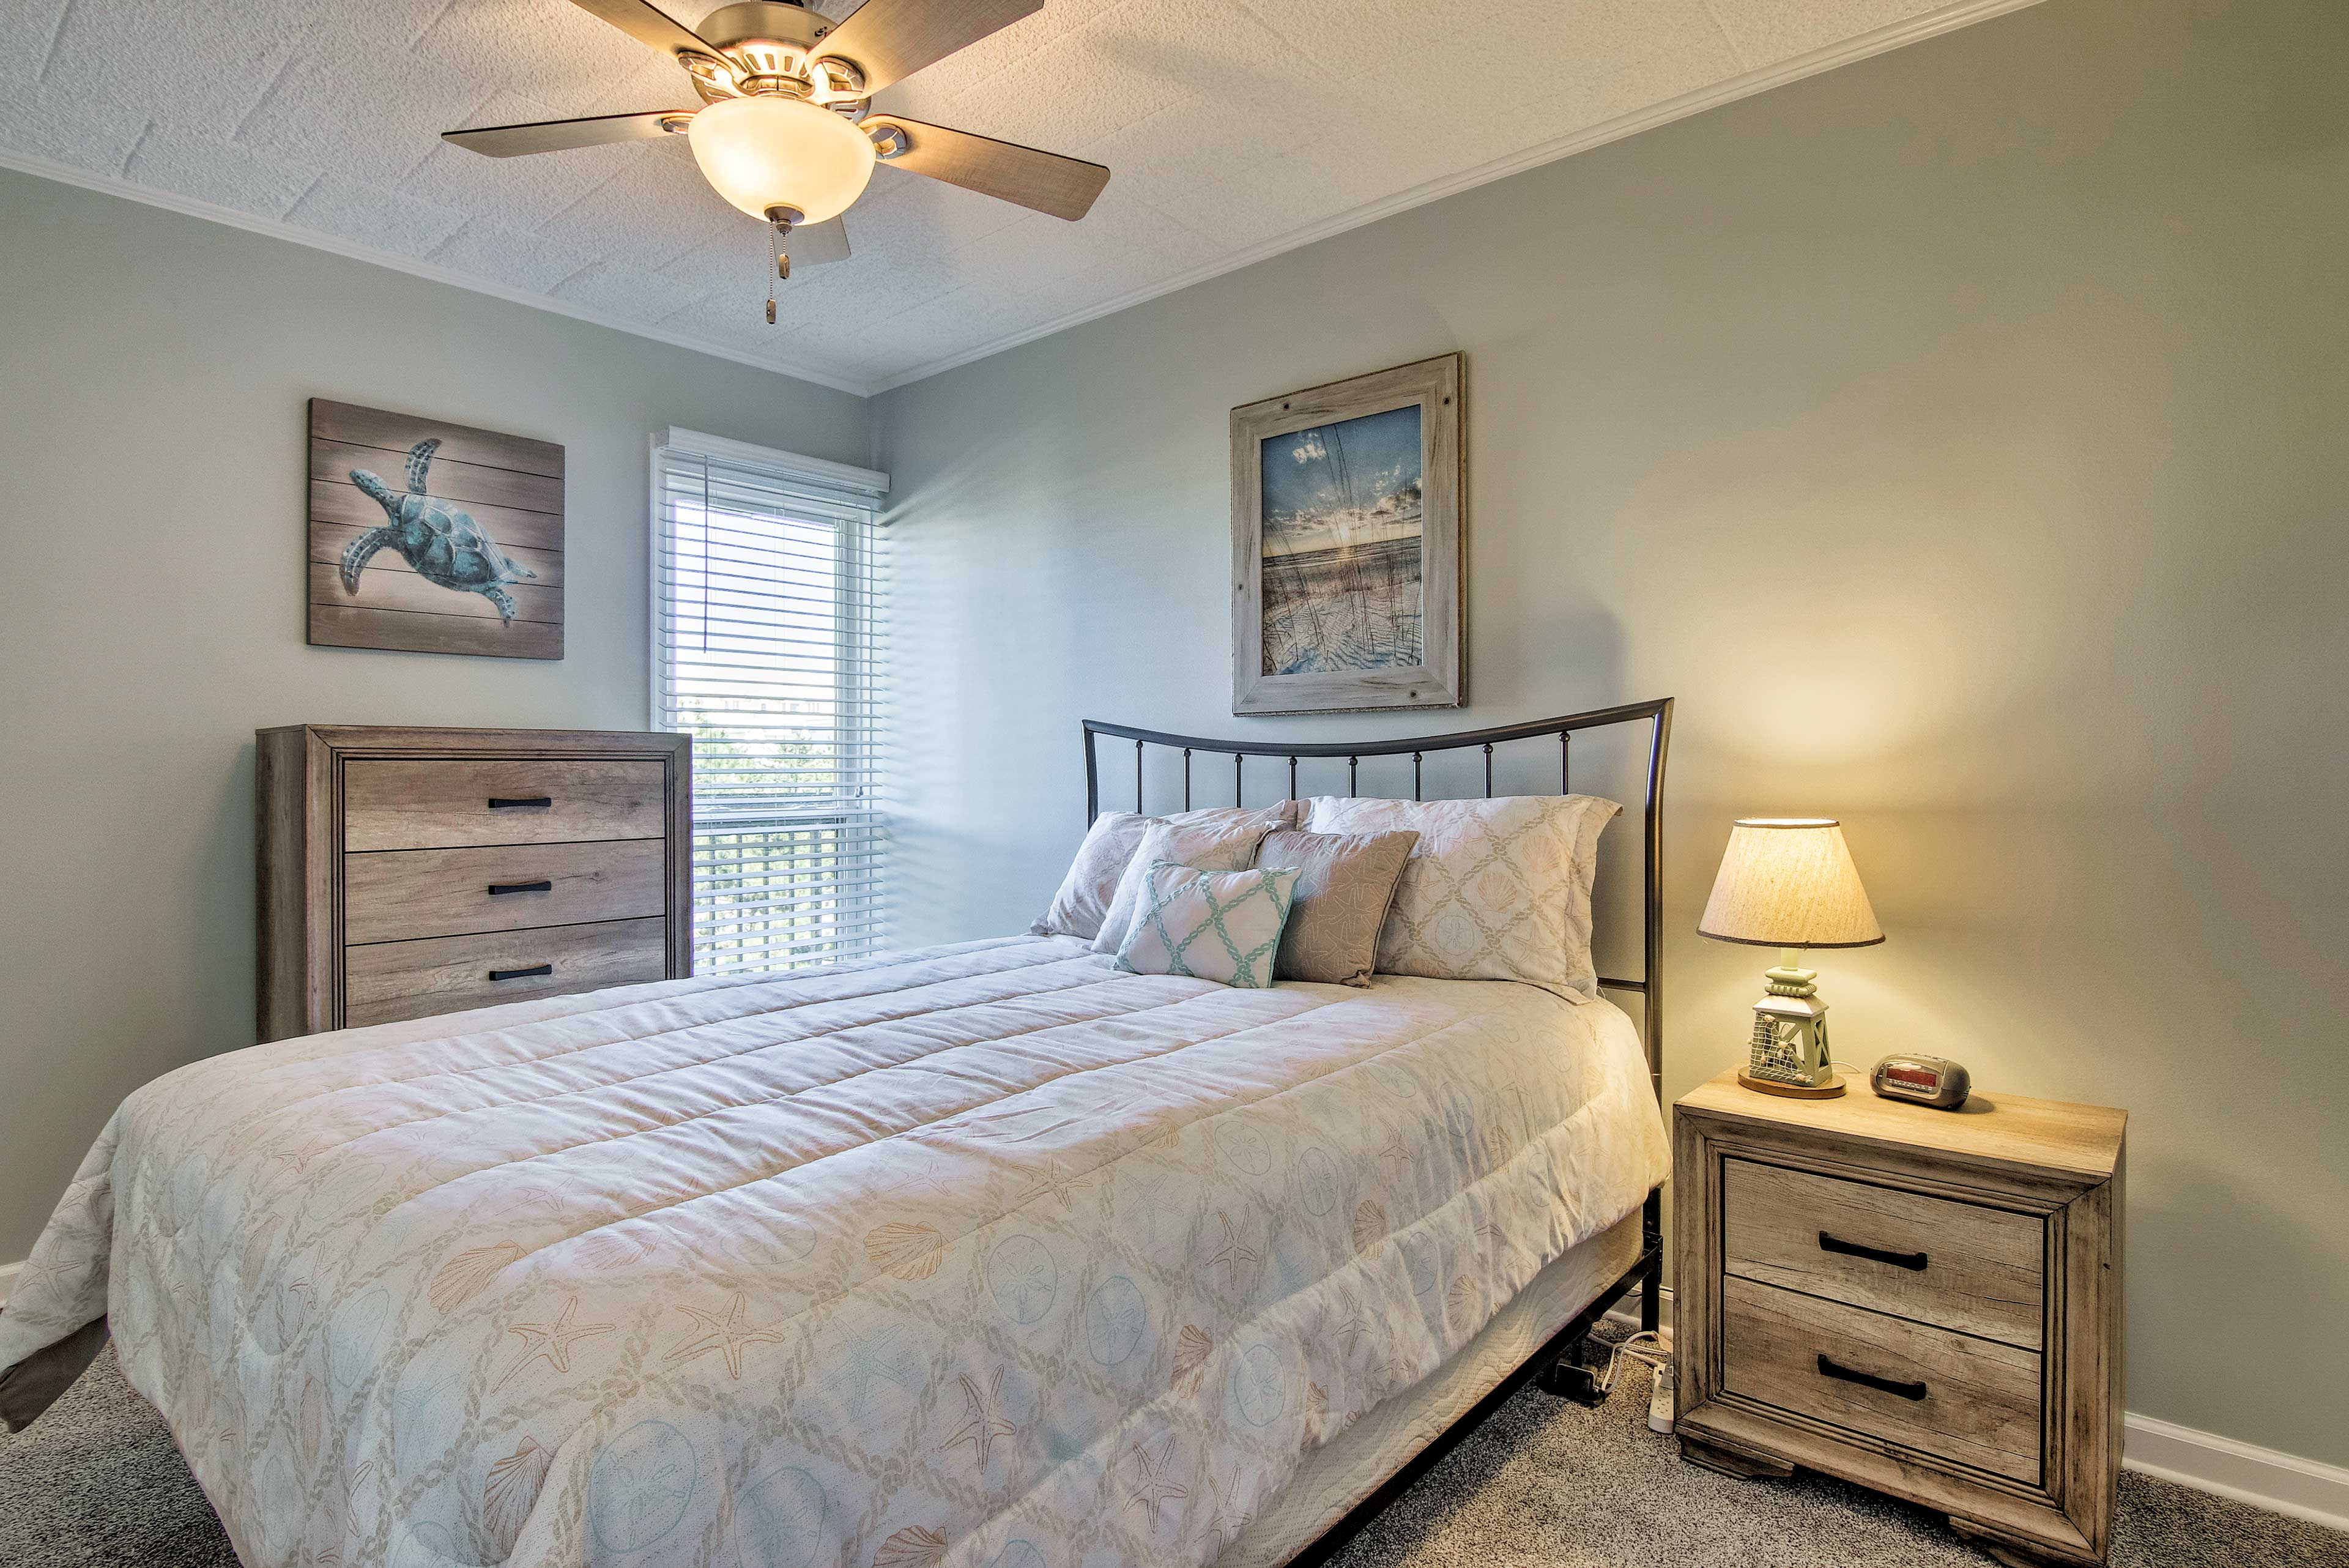 Claim the master bedroom's queen bed as your own.